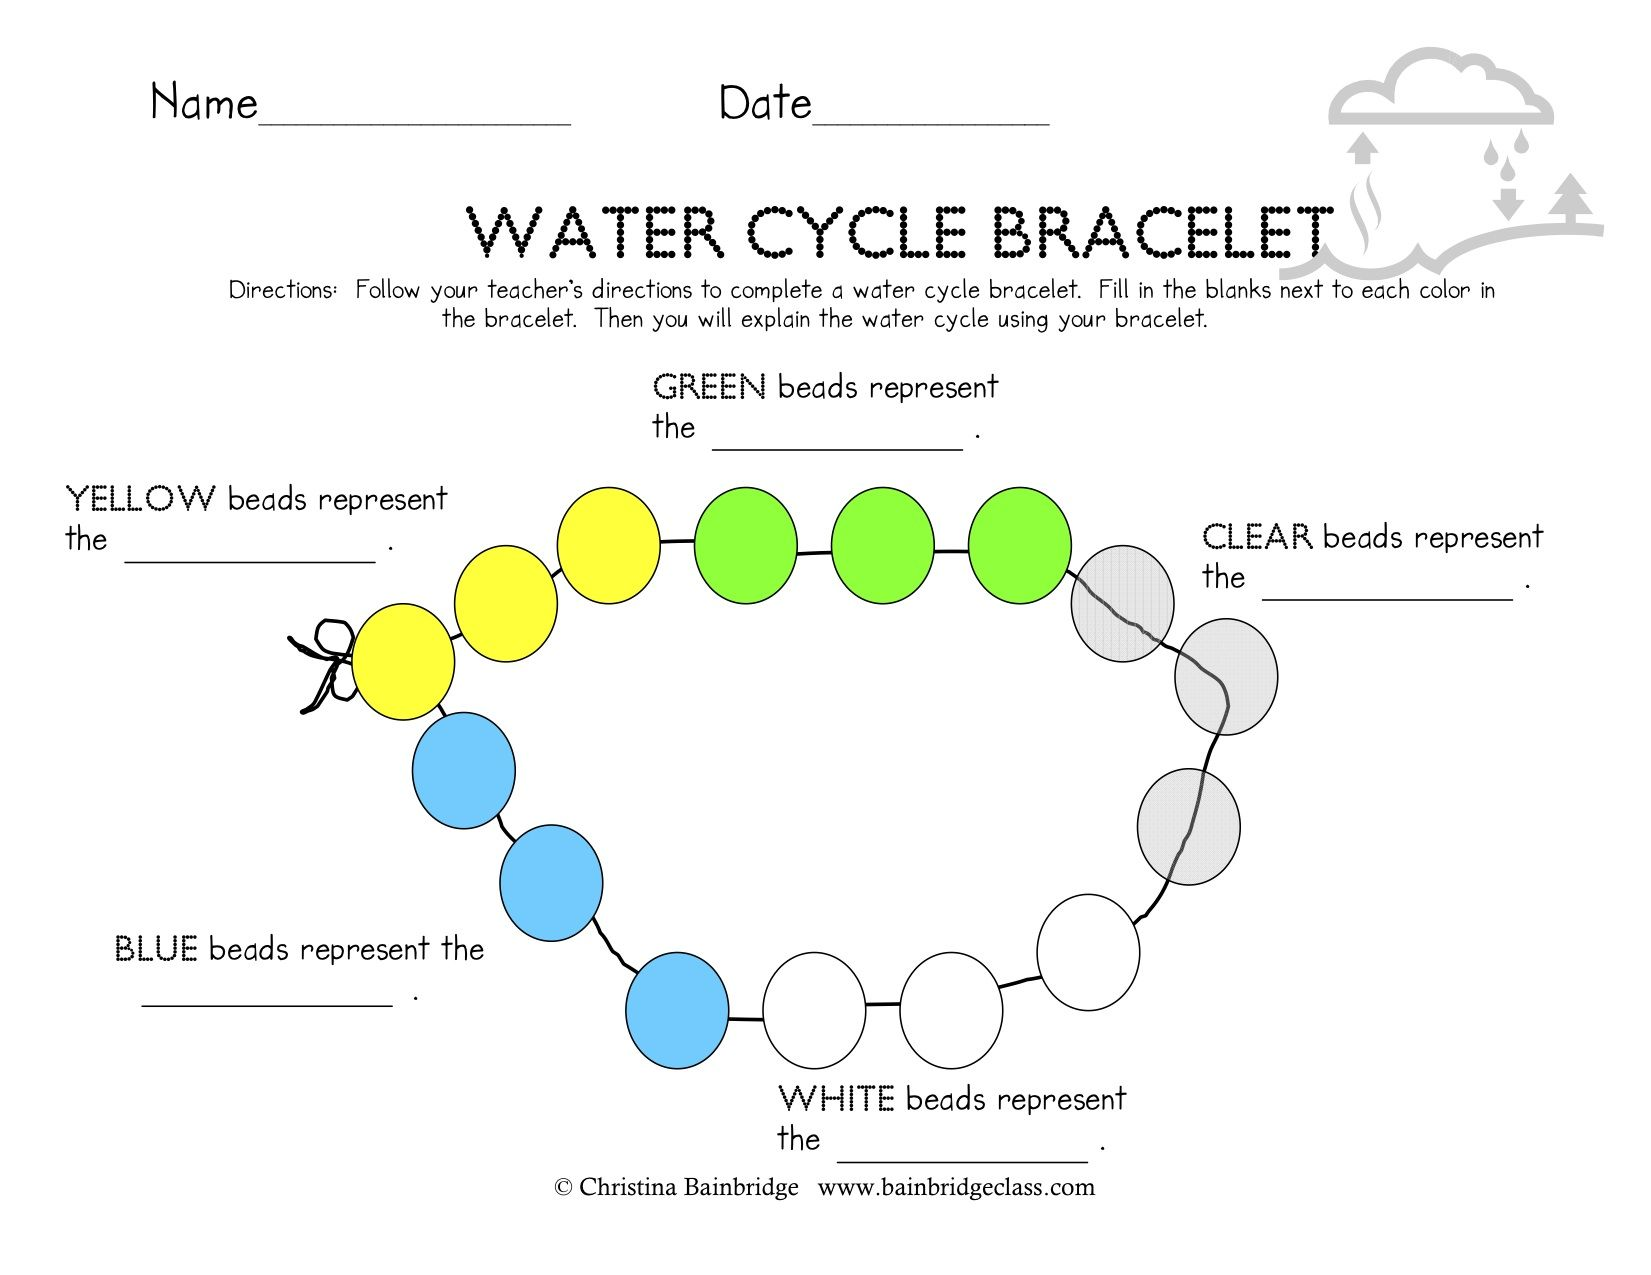 water cycle bracelets  [ 1651 x 1275 Pixel ]